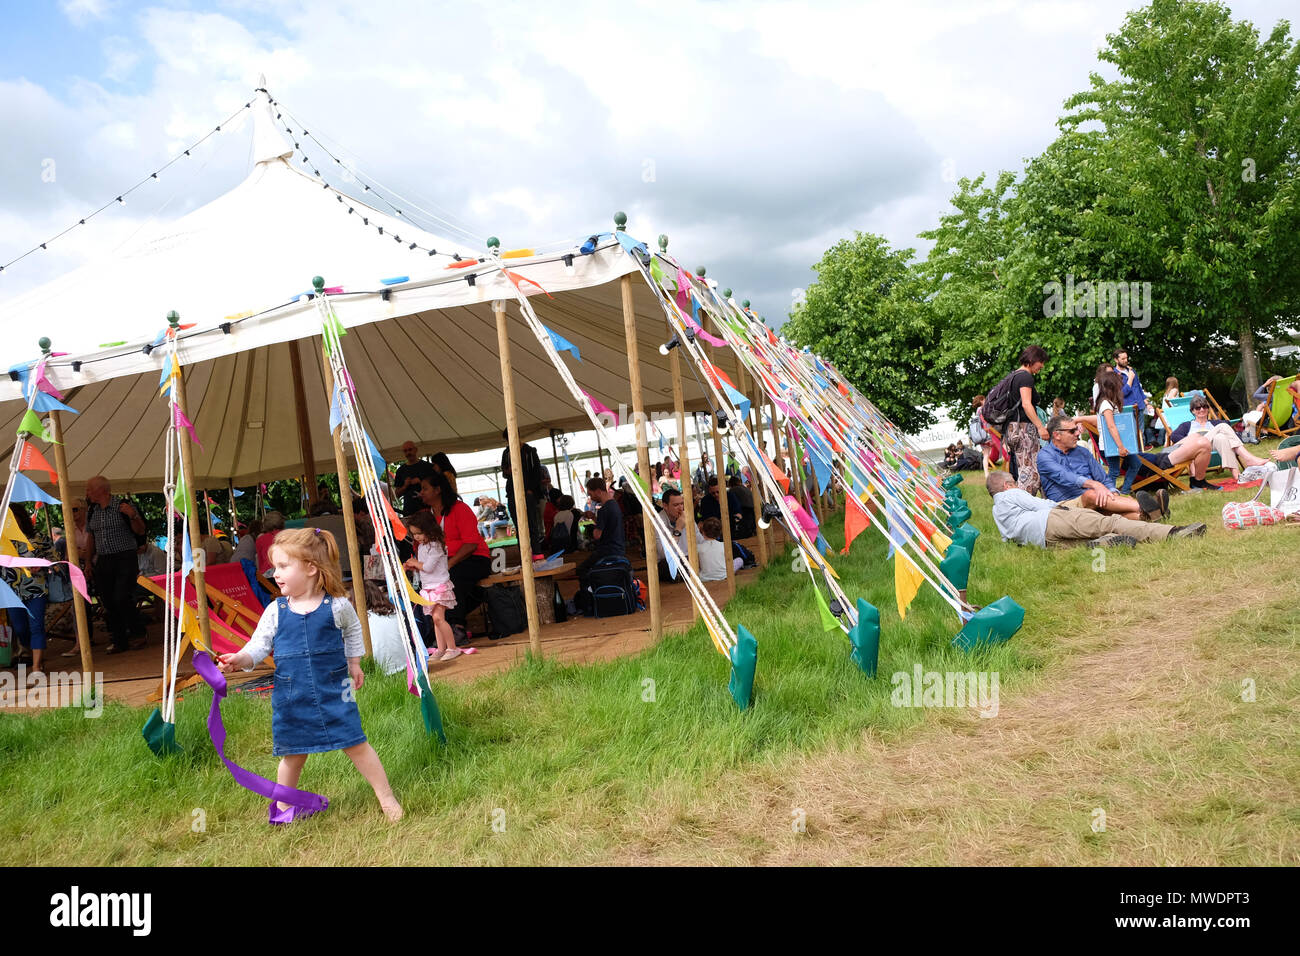 Marquee Tent Stock Photos Amp Marquee Tent Stock Images Alamy